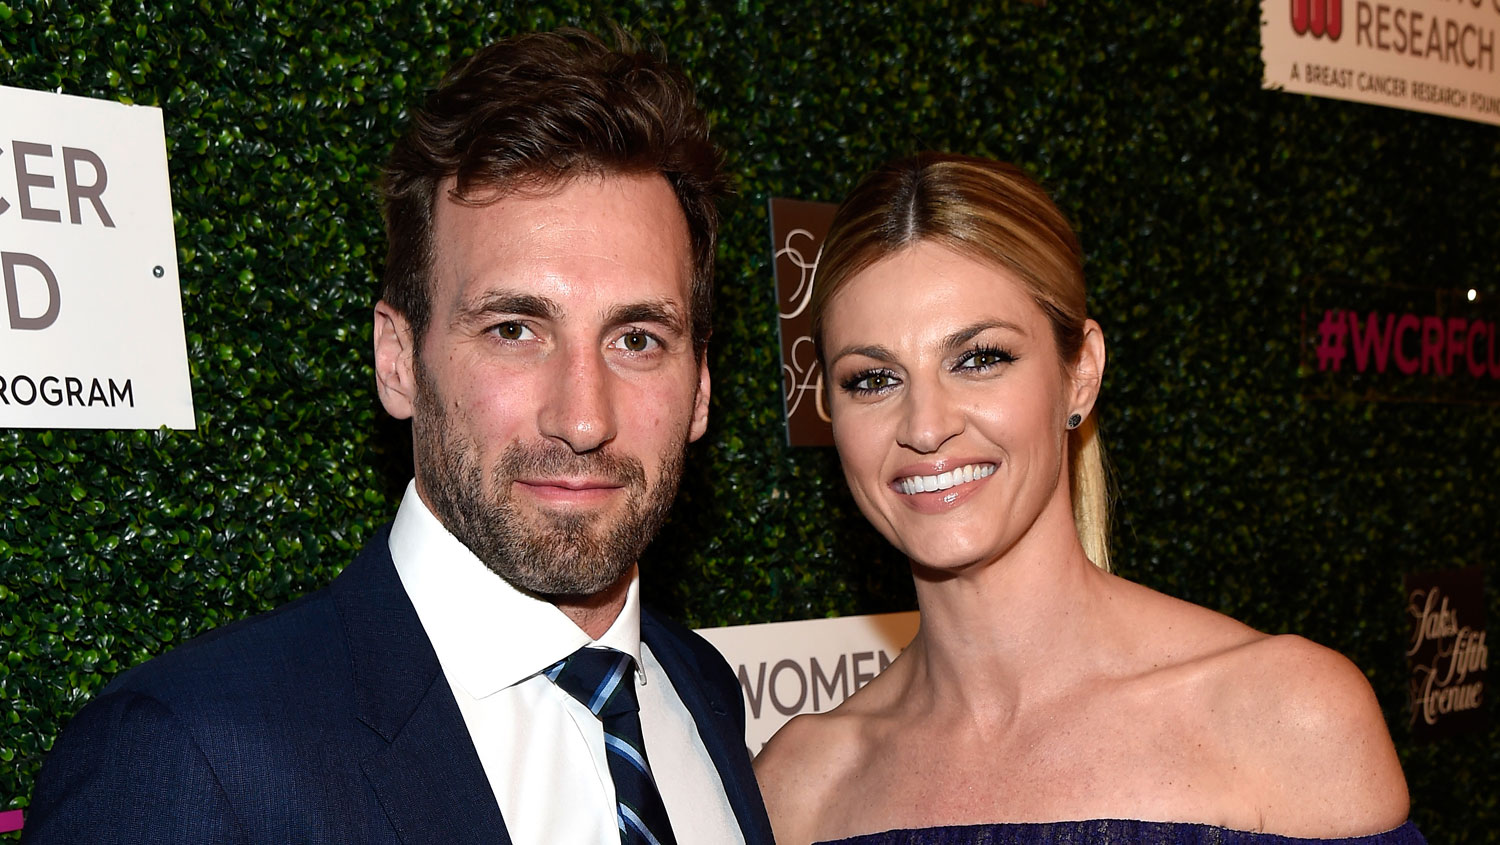 Dwts Host Erin Andrews Marries Hockey Player Jarret Stoll Erin